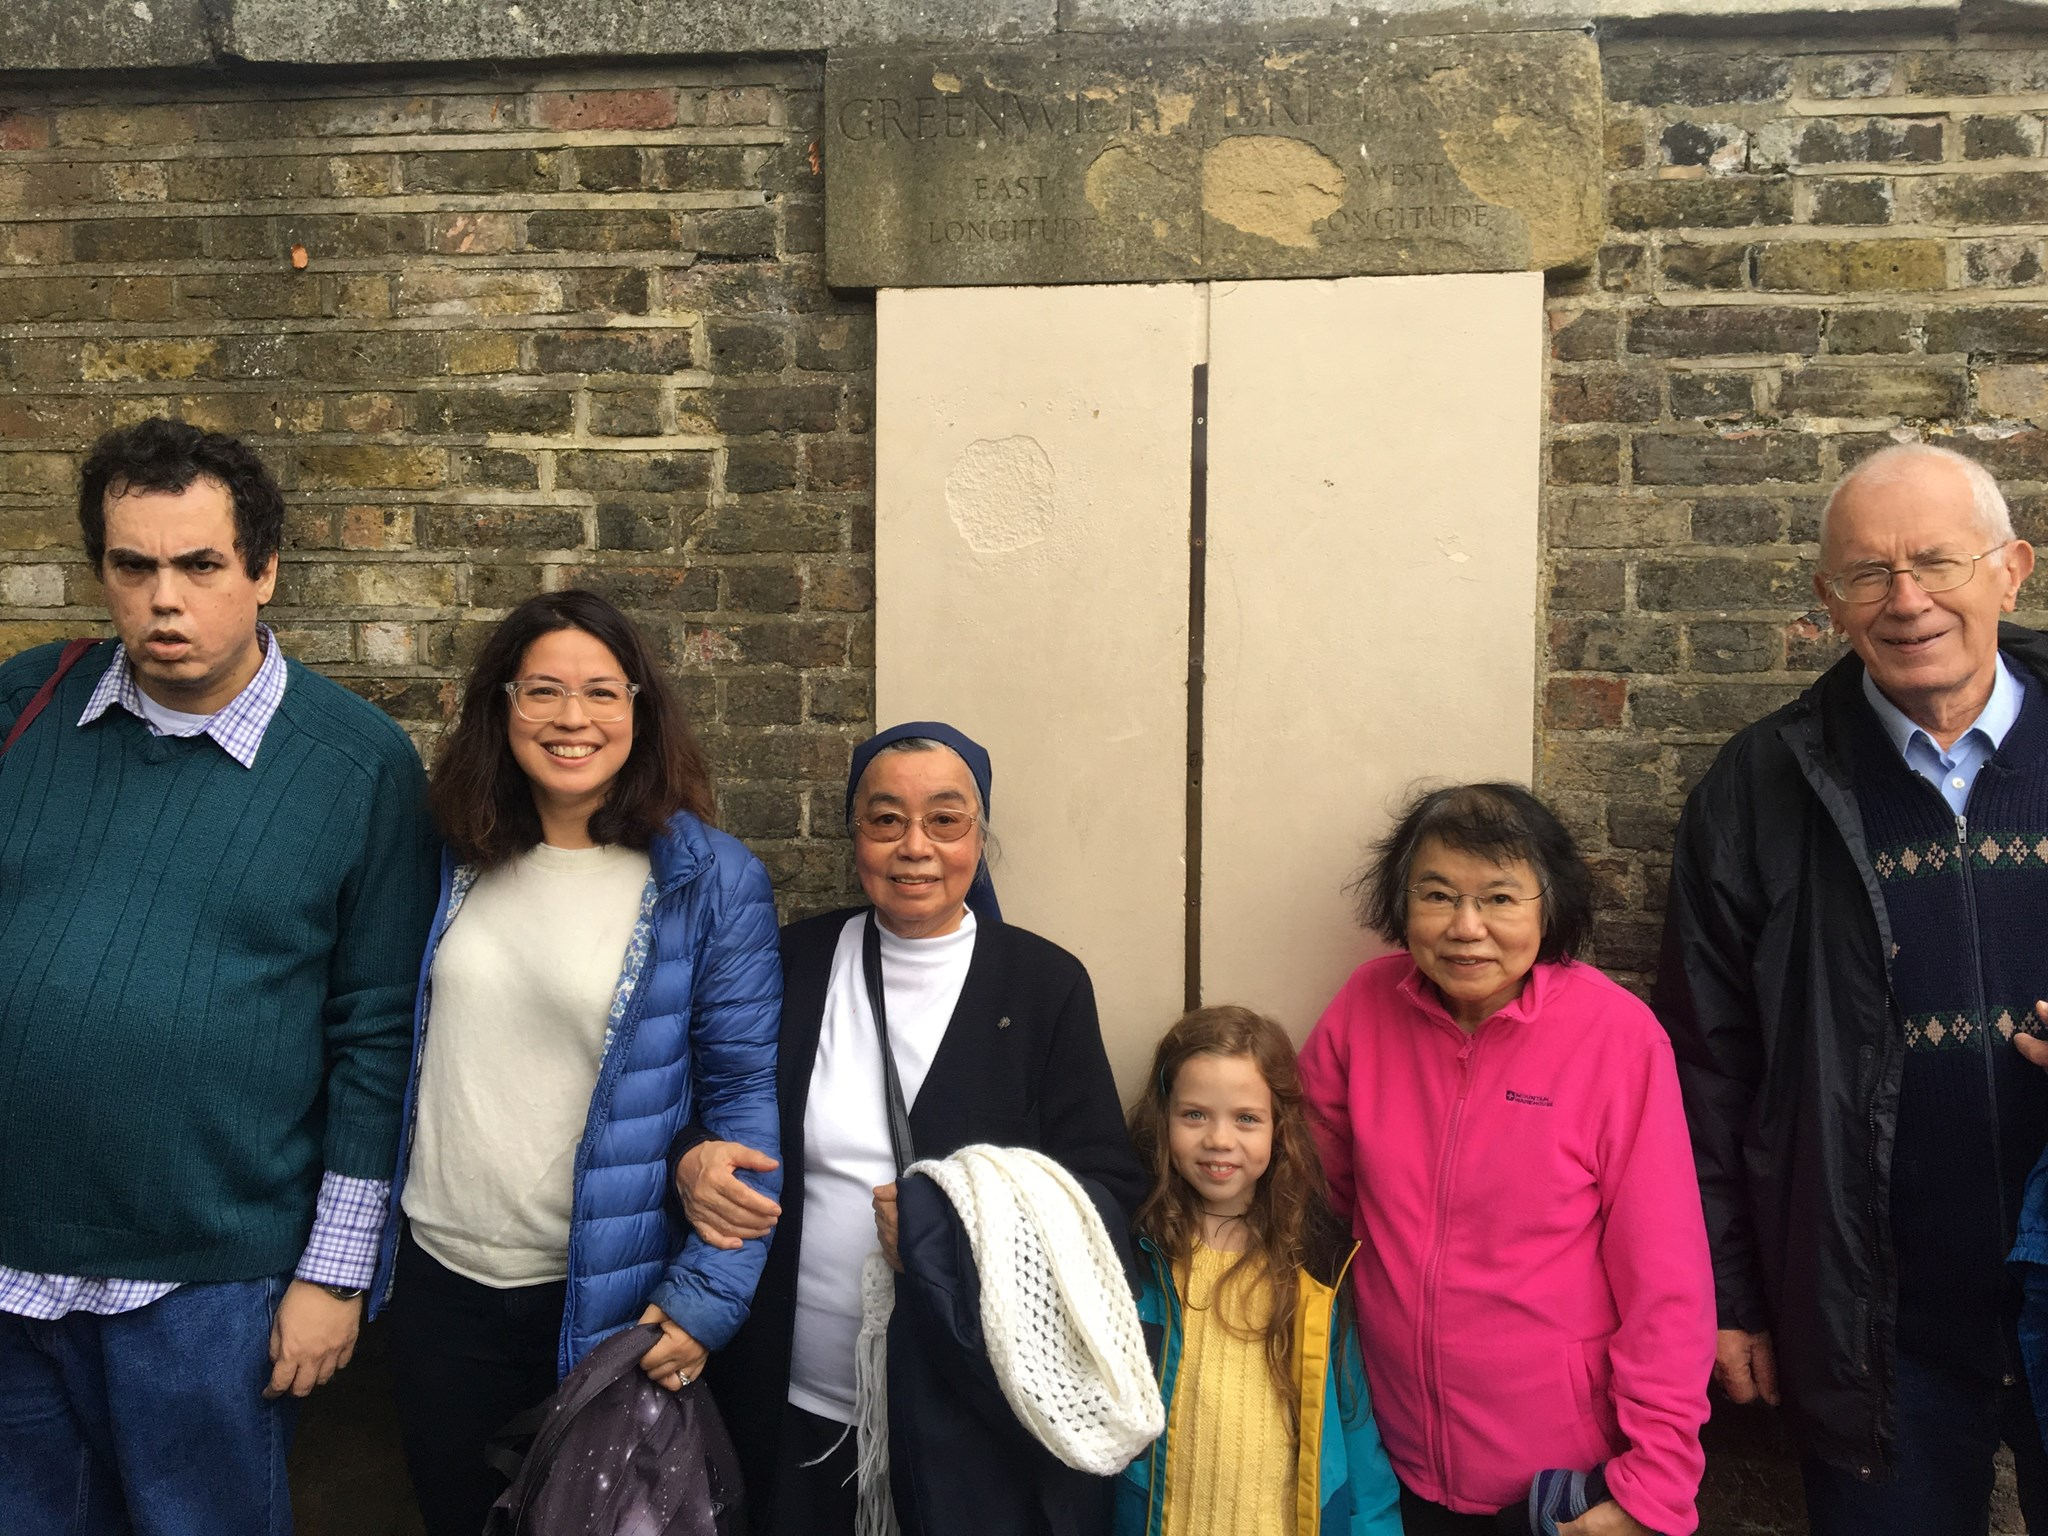 Elwyn and family at Greenwich